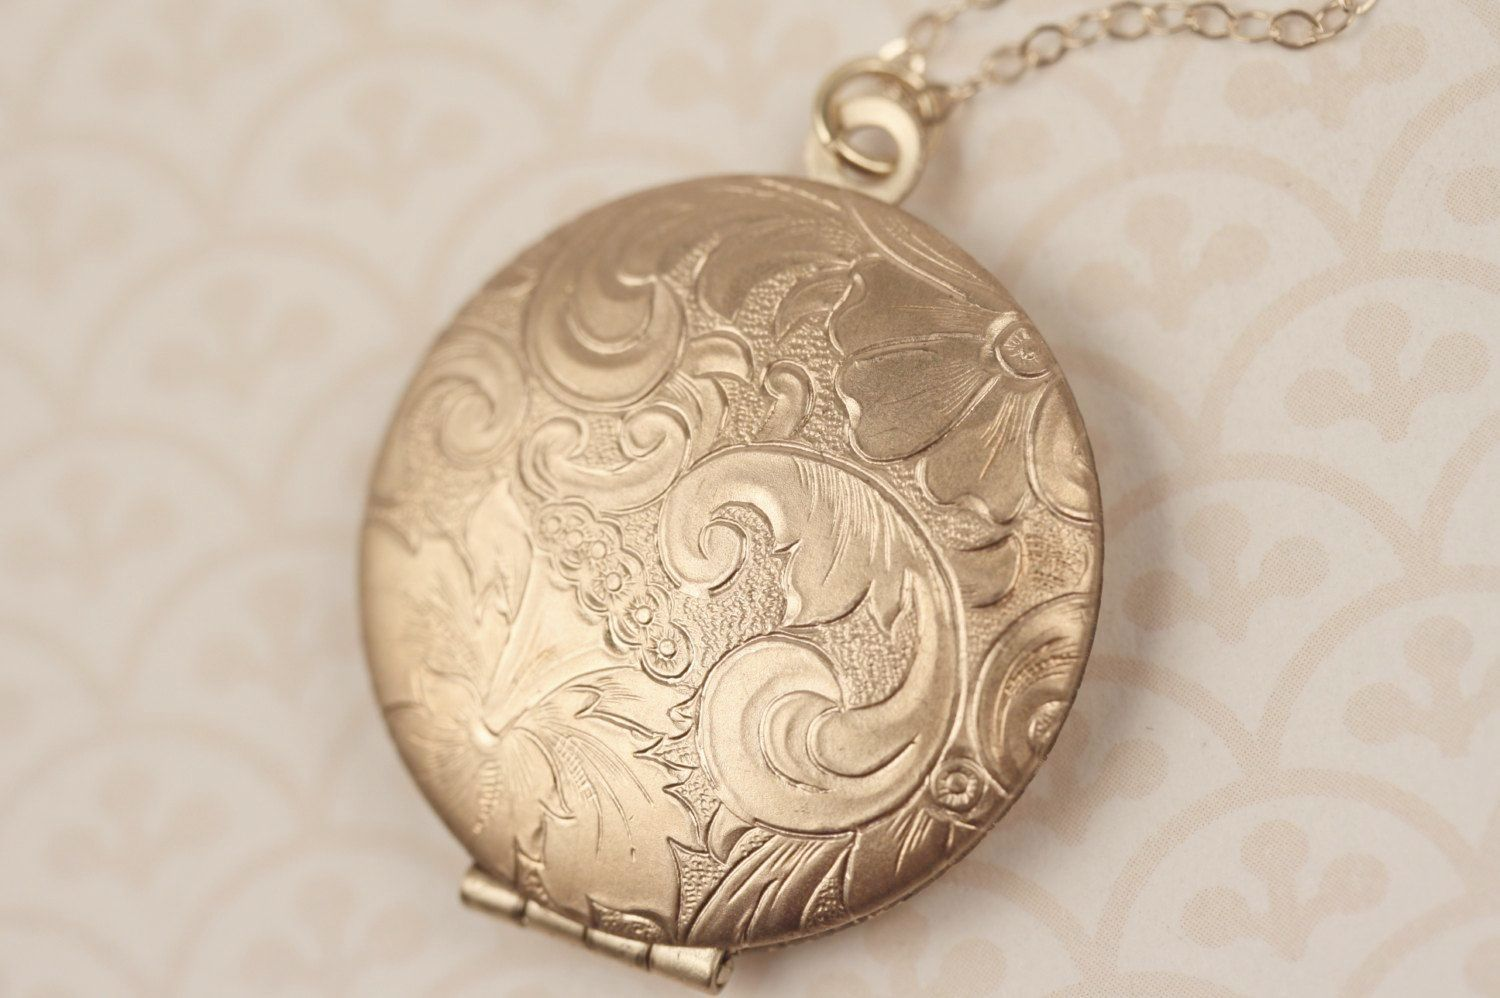 Incredible ue silver locket pendant necklace visit jeweliy